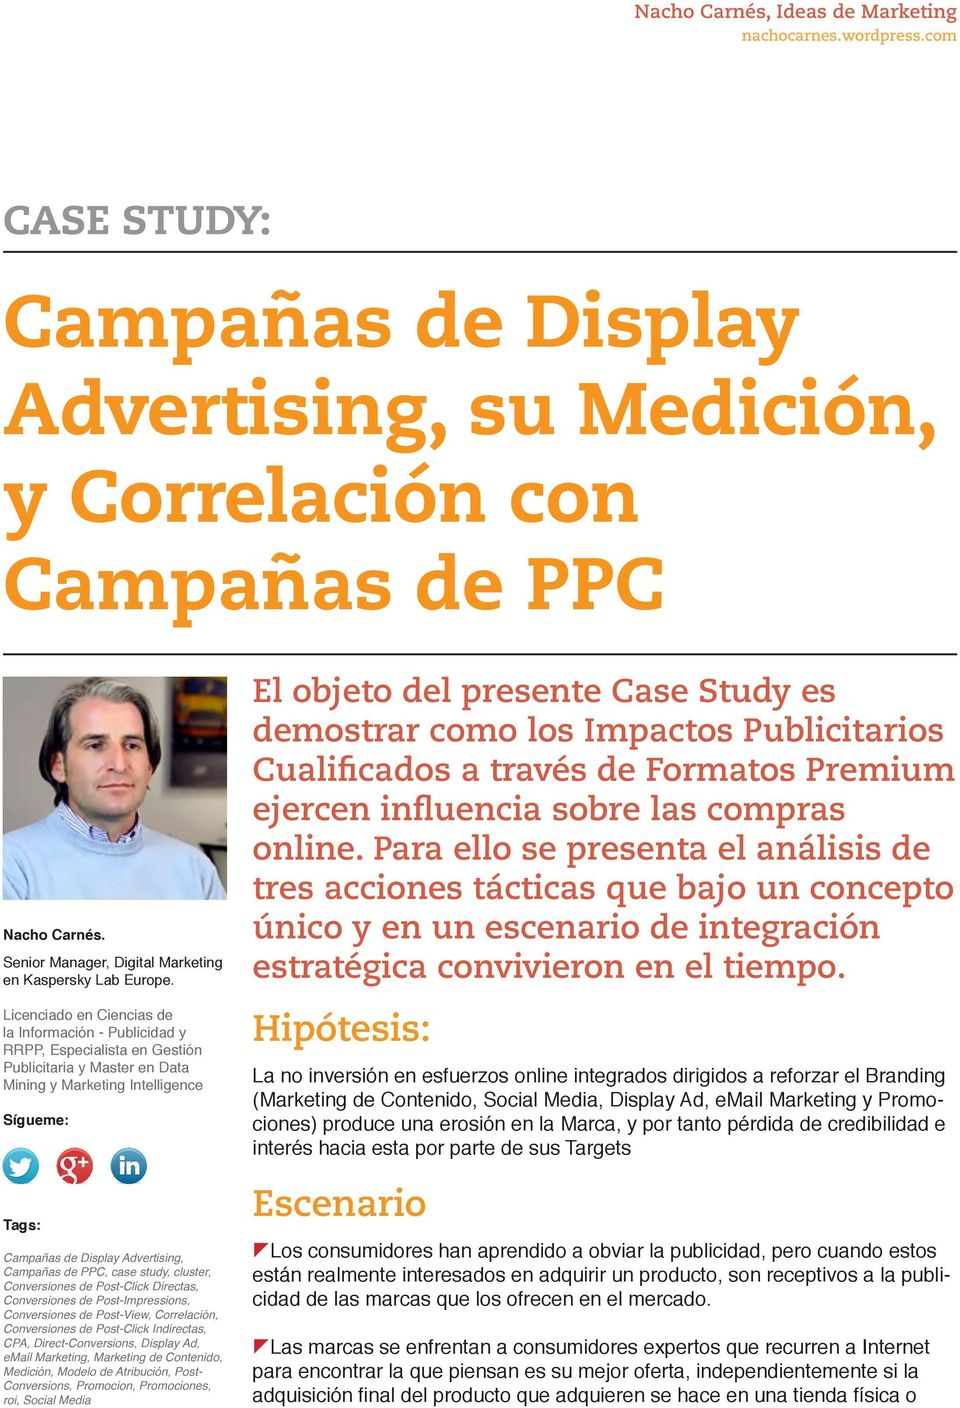 Campañas de PPC, case study, cluster, Conversiones de Post-Click, Conversiones de Post-Impressions, Conversiones de Post-View, Correlación, Conversiones de Post-Click, CPA, Direct-Conversions,